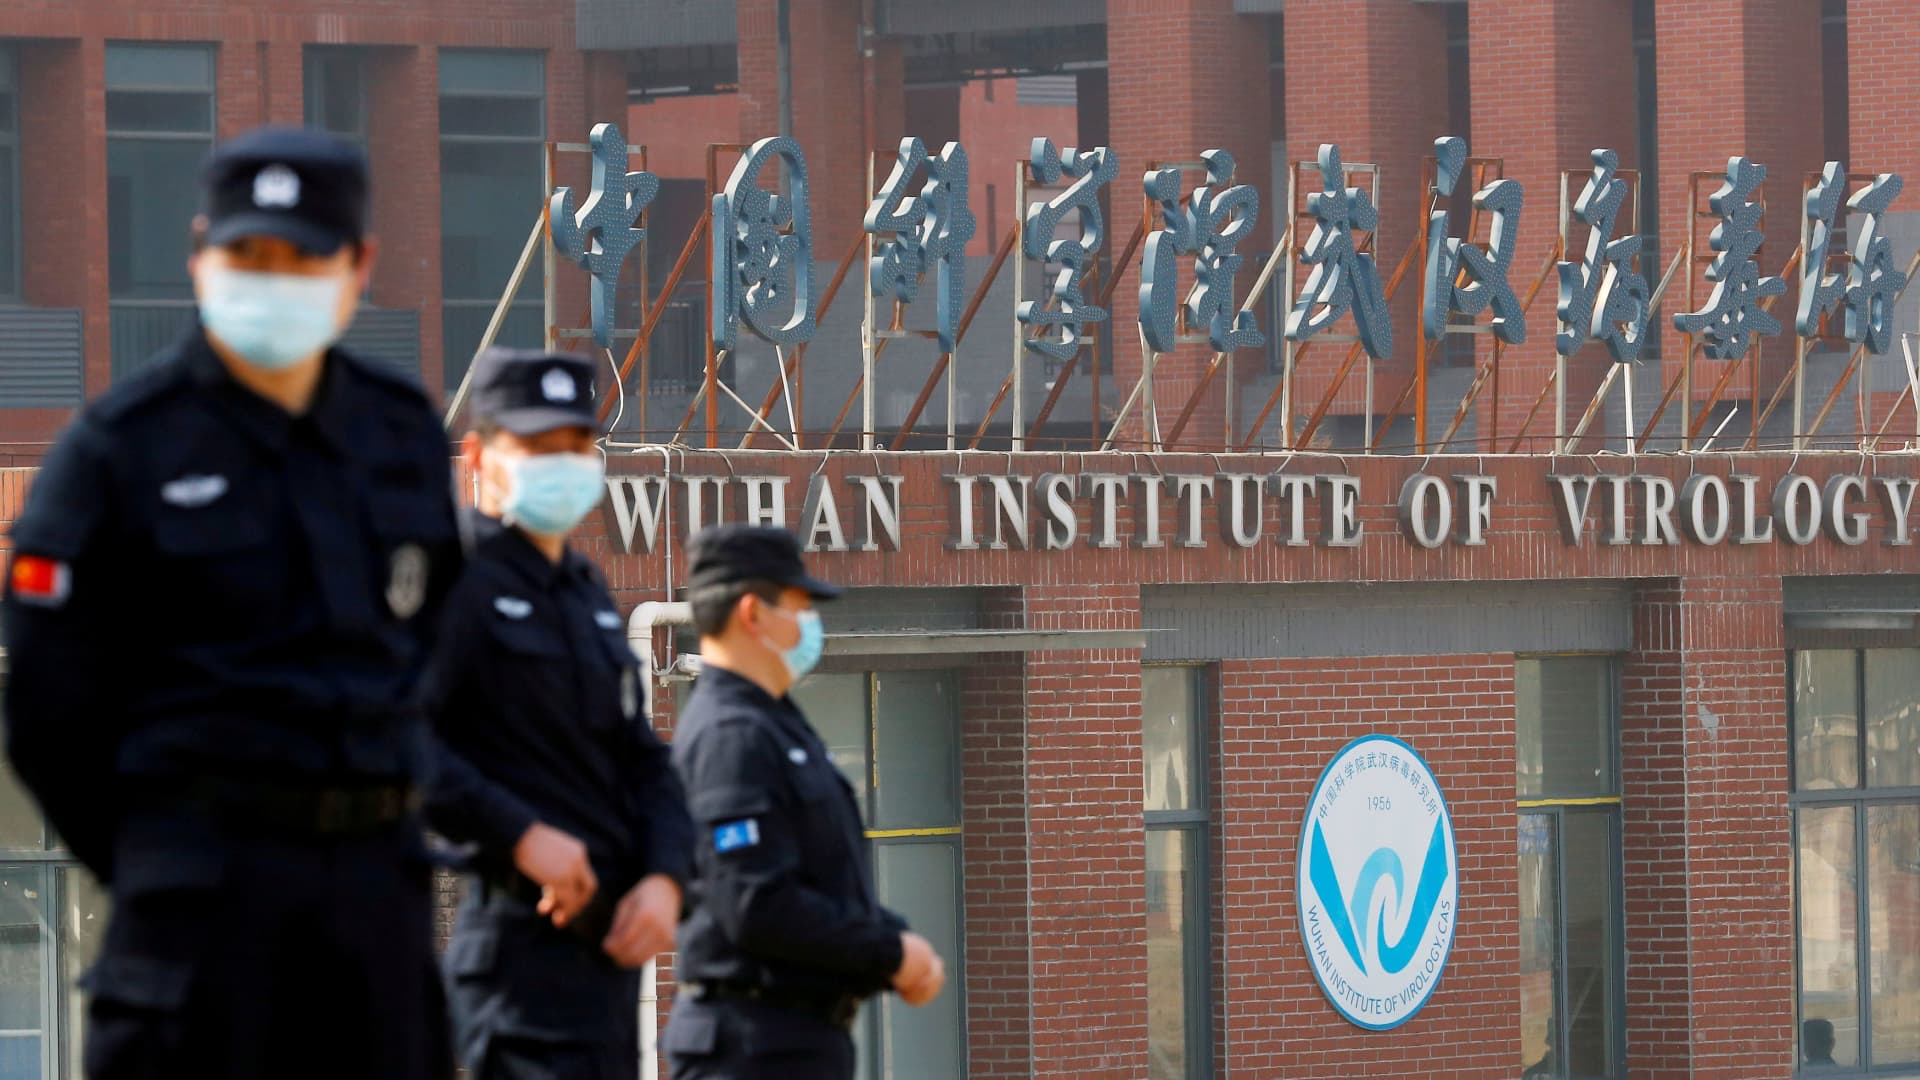 Security personnel keep watch outside the Wuhan Institute of Virology during the visit by the World Health Organization (WHO) team tasked with investigating the origins of the coronavirus disease (COVID-19), in Wuhan, Hubei province, China February 3, 2021.